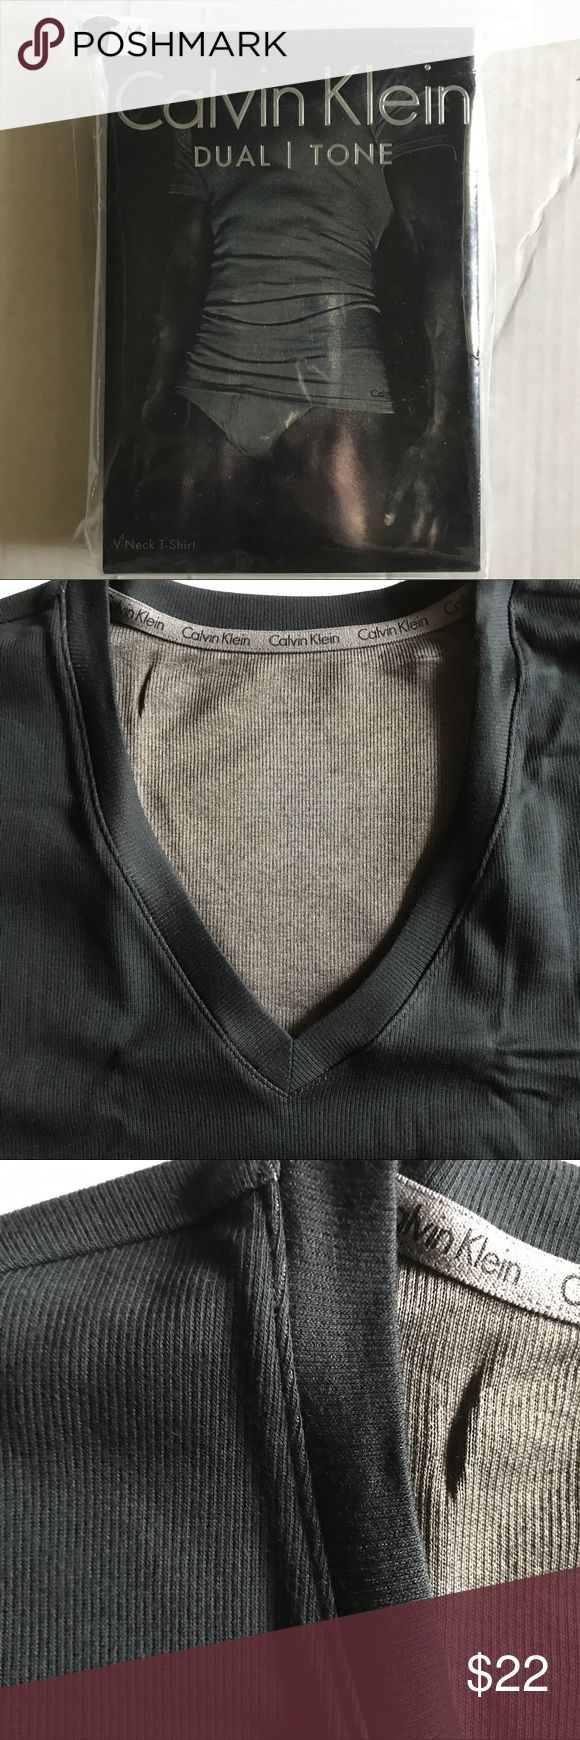 Calvin Klein Duel Tone T-shirt  V-neck S, M, L Calvin Klein's line of Duel Tone Tees. S, M, L men's. Ribbed 2 tones and body defining fit. Stretched will reveal the second undertone; its in the way the fabric is reverse weaved.  One in Black with Brown or one in Steel Blue with Black. Pretty neat. Calvin Klein Underwear Shirts Tees - Short Sleeve